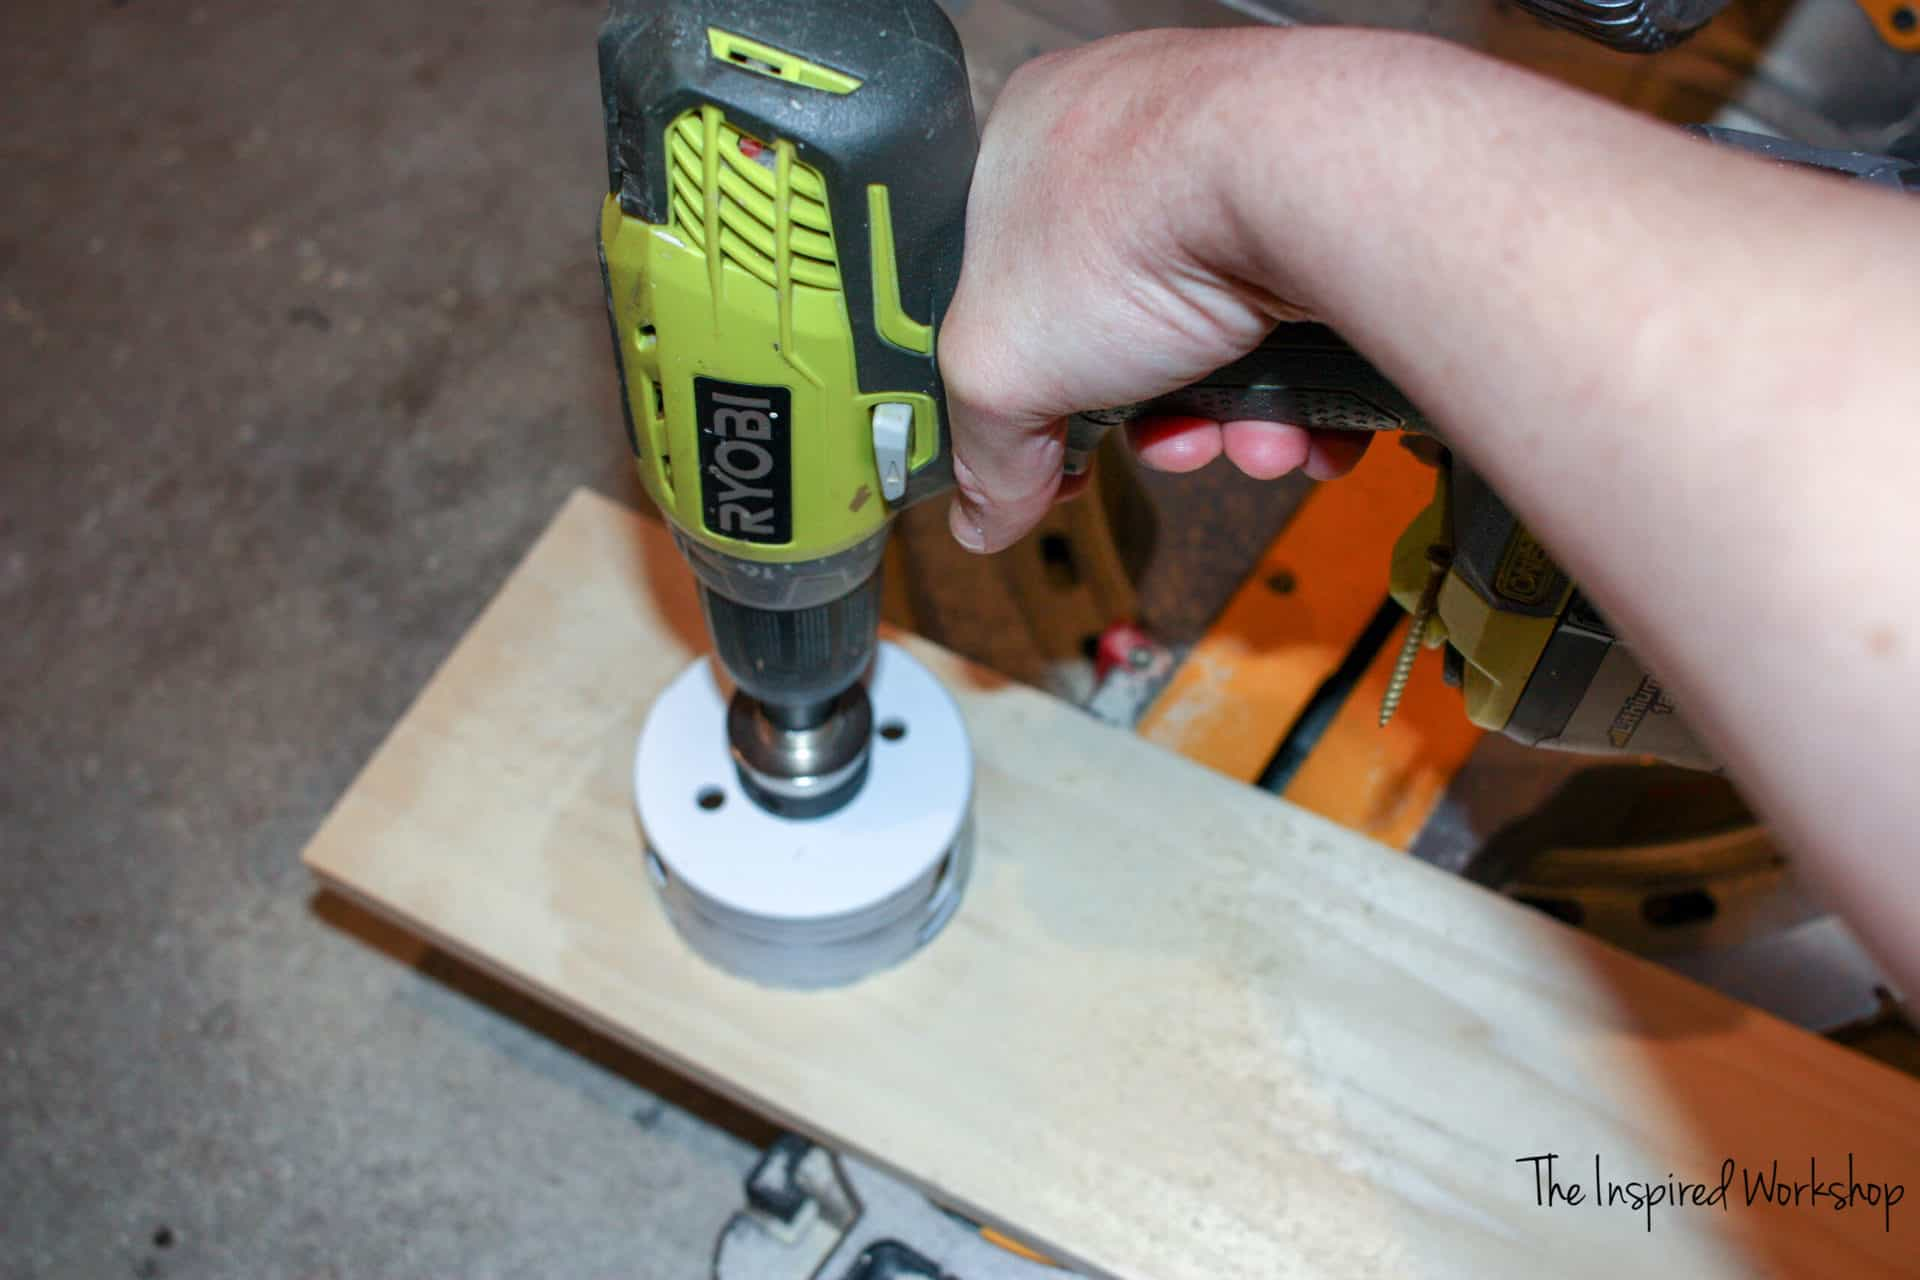 DIY Wine Caddy - drilling the hole for the wine bottle